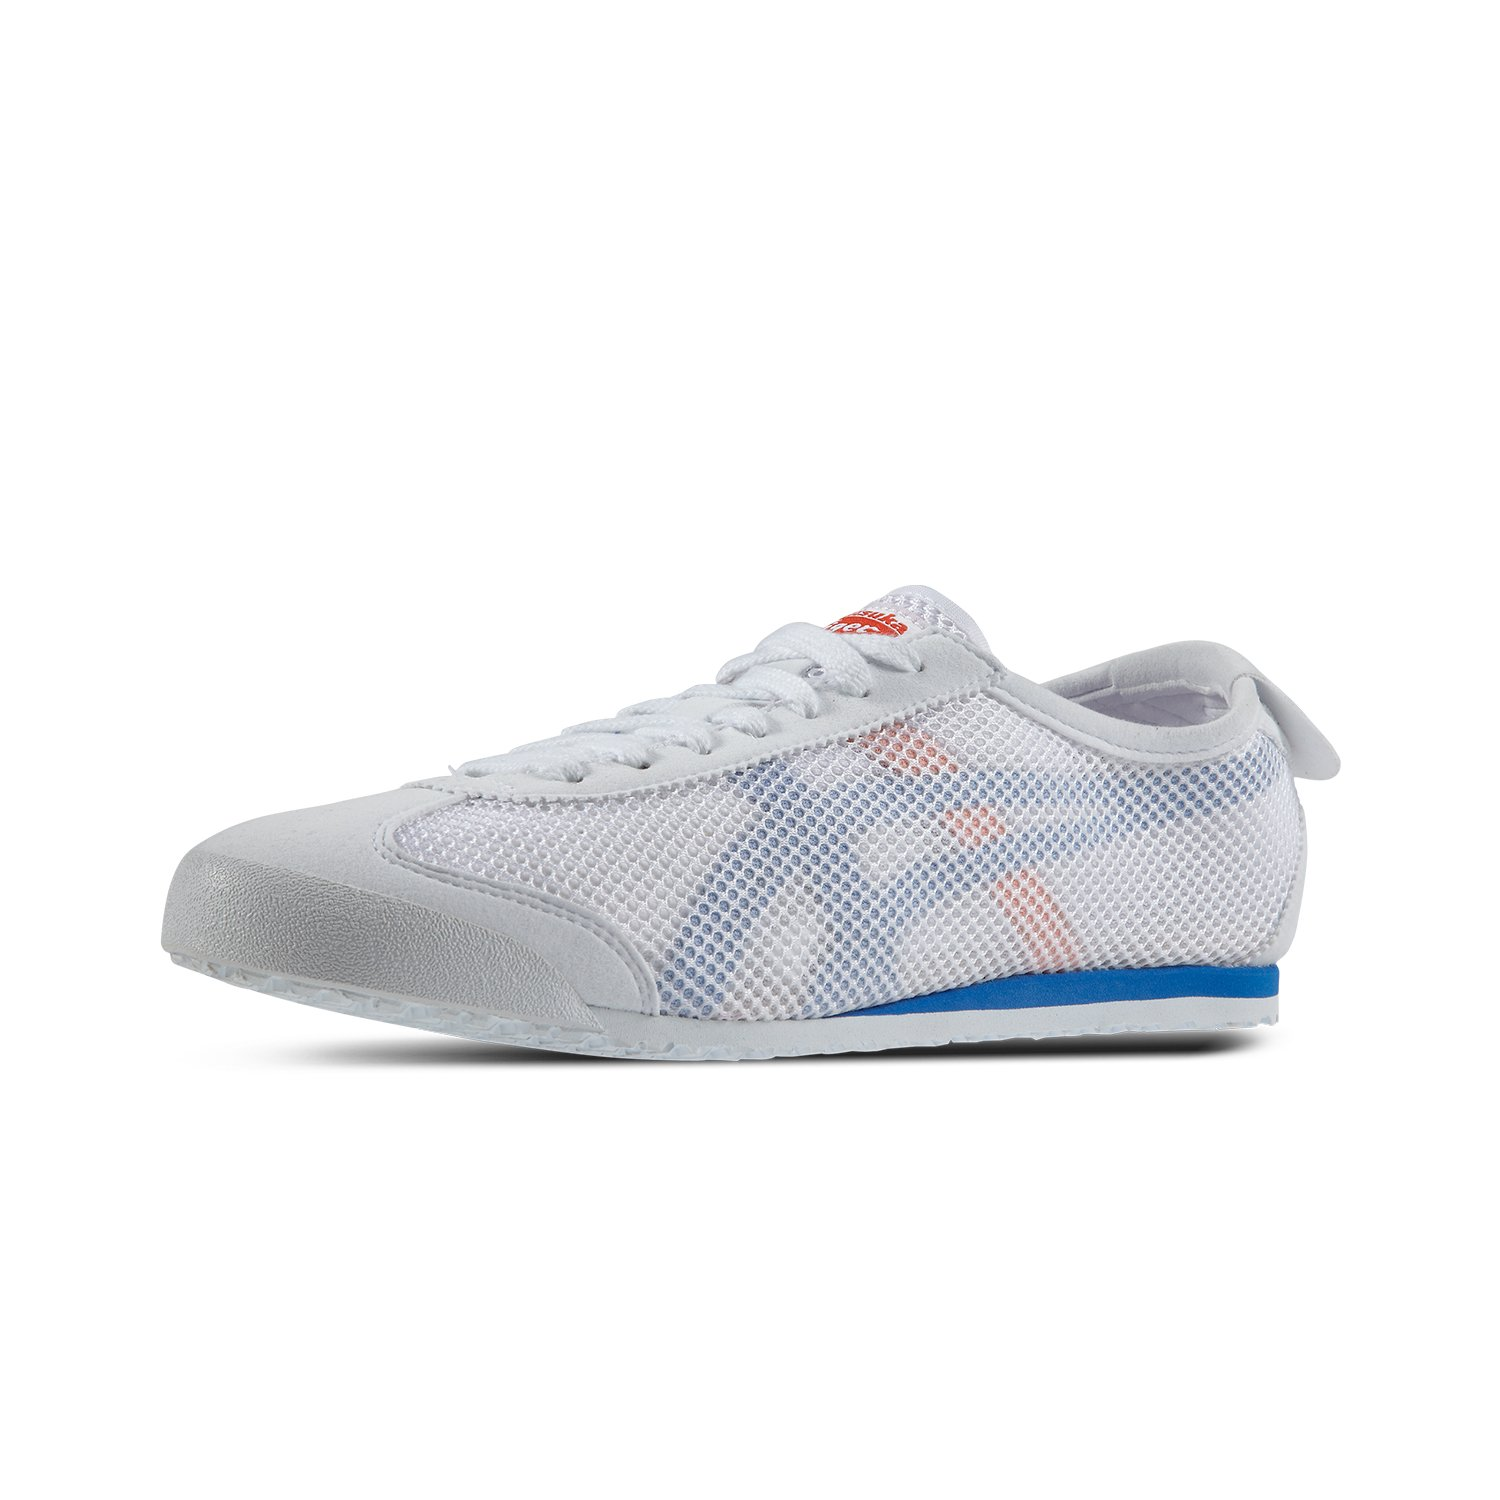 new products b3686 f74c2 Onitsuka Tiger Mexico 66 Light Mesh Sneaker D508N-0144 ...